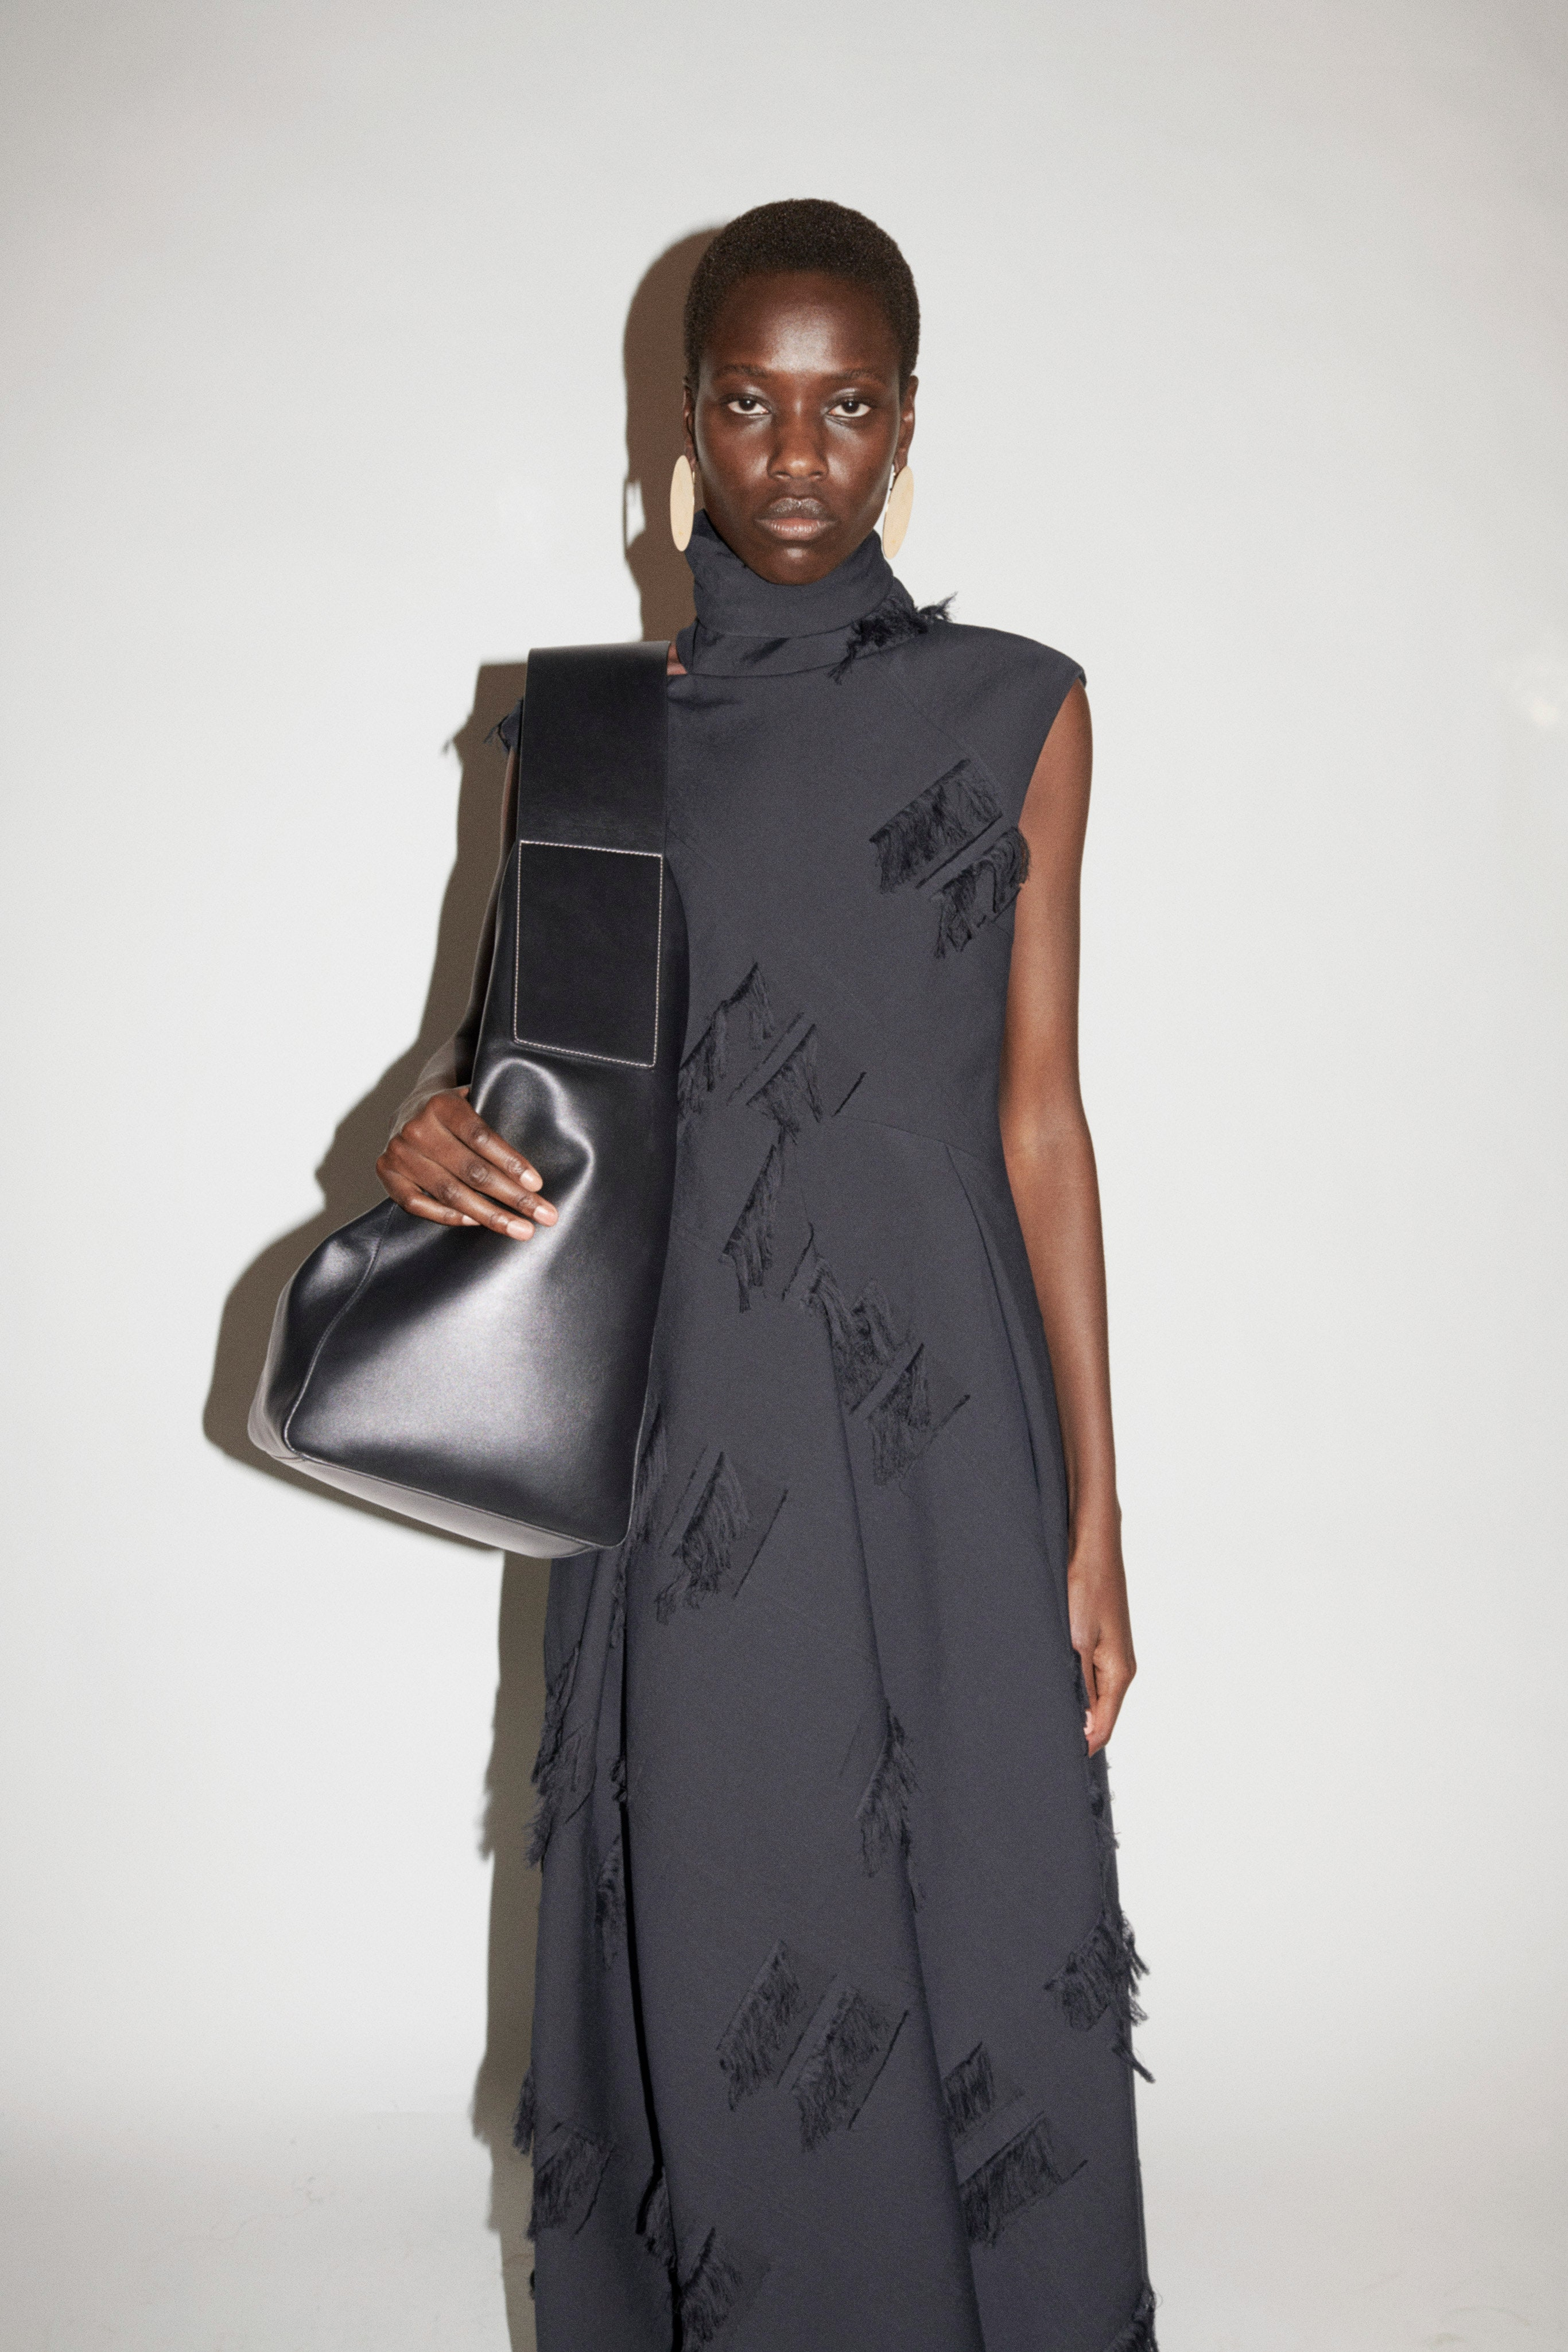 For walks in the fresh air: A seasonal collection of Jil Sander arrived at Asthik (photo 30)